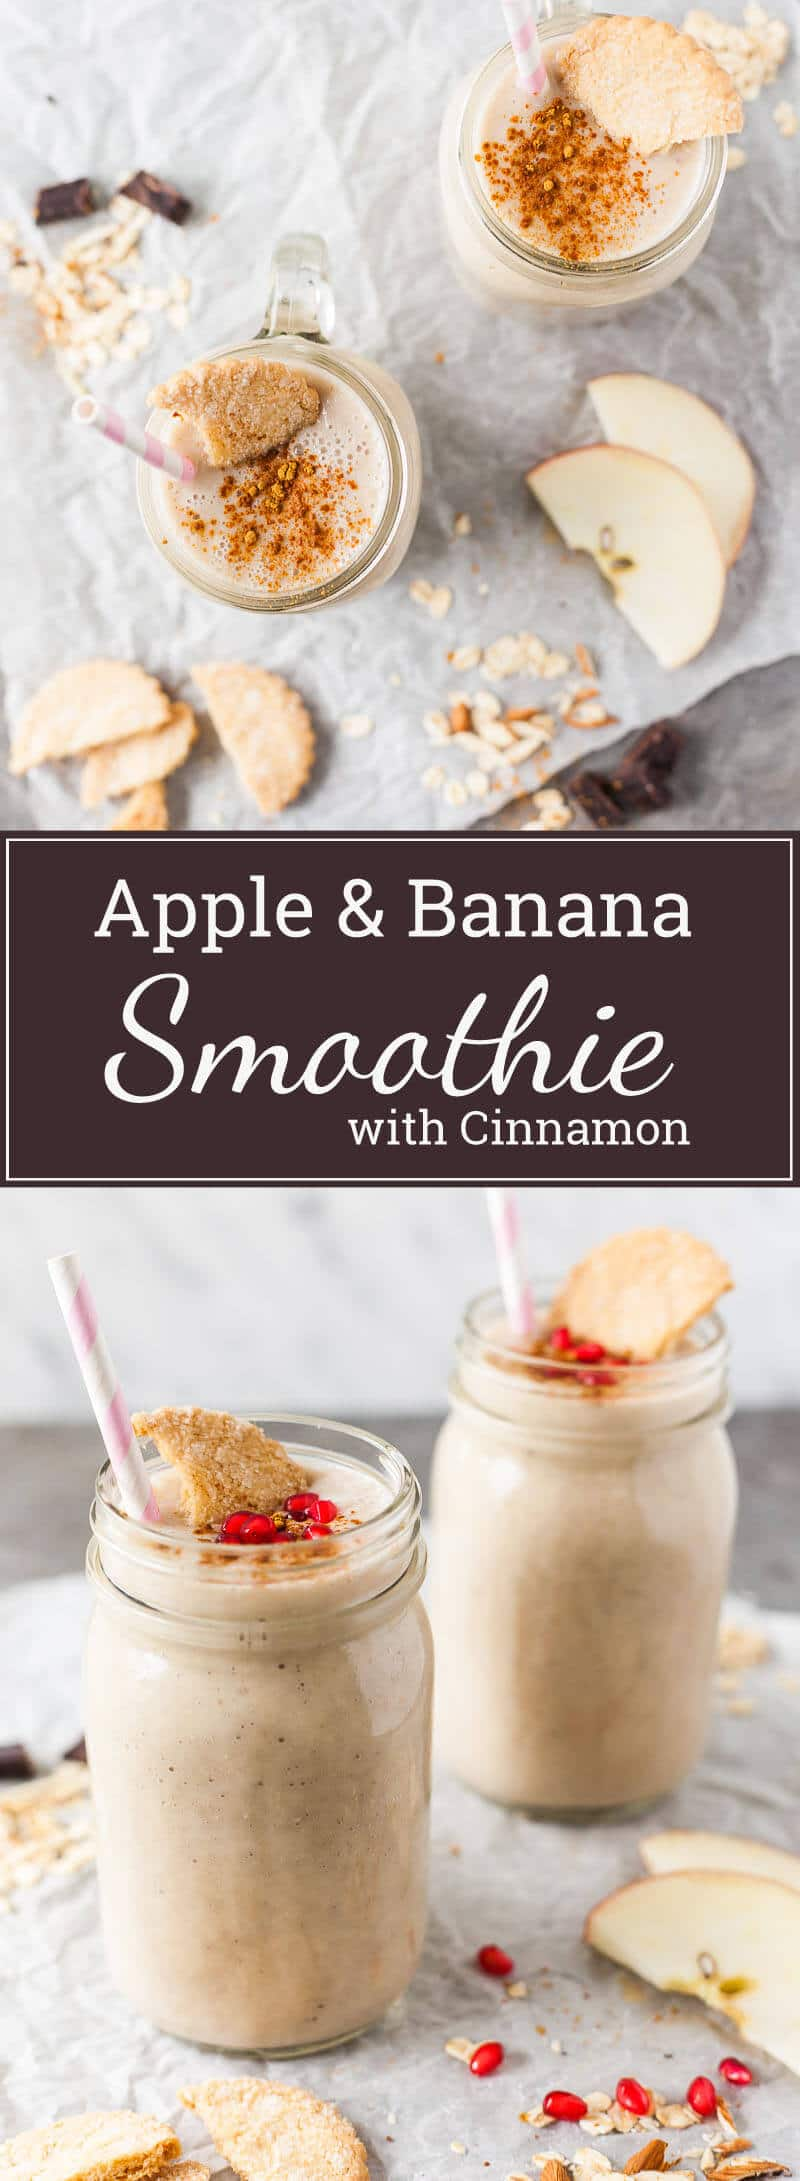 This simple Apple Banana Smoothie is delicious, nutritious and super easy to make. Just place everything in your blender, blend and … done!